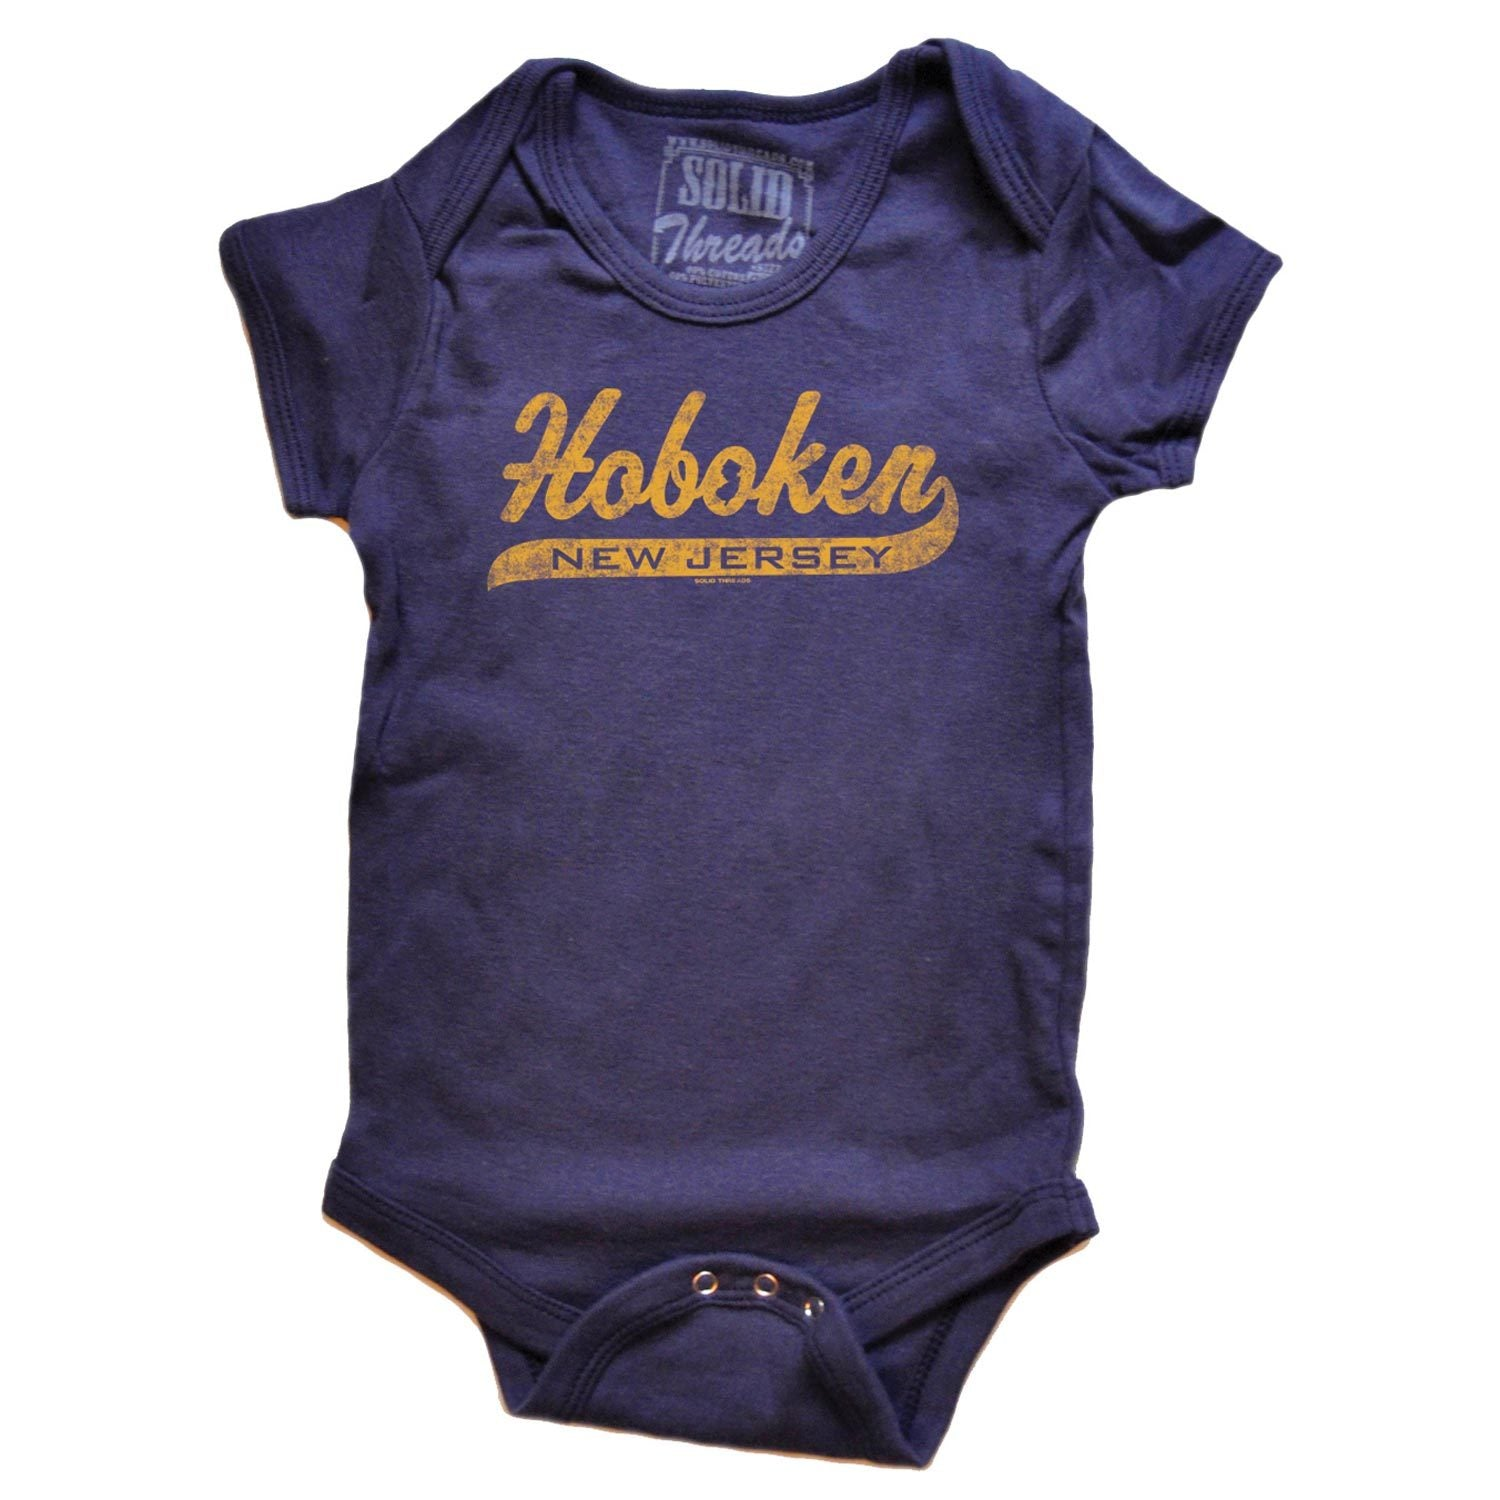 Retro Baby Hoboken Script Romper | SOLID THREADS